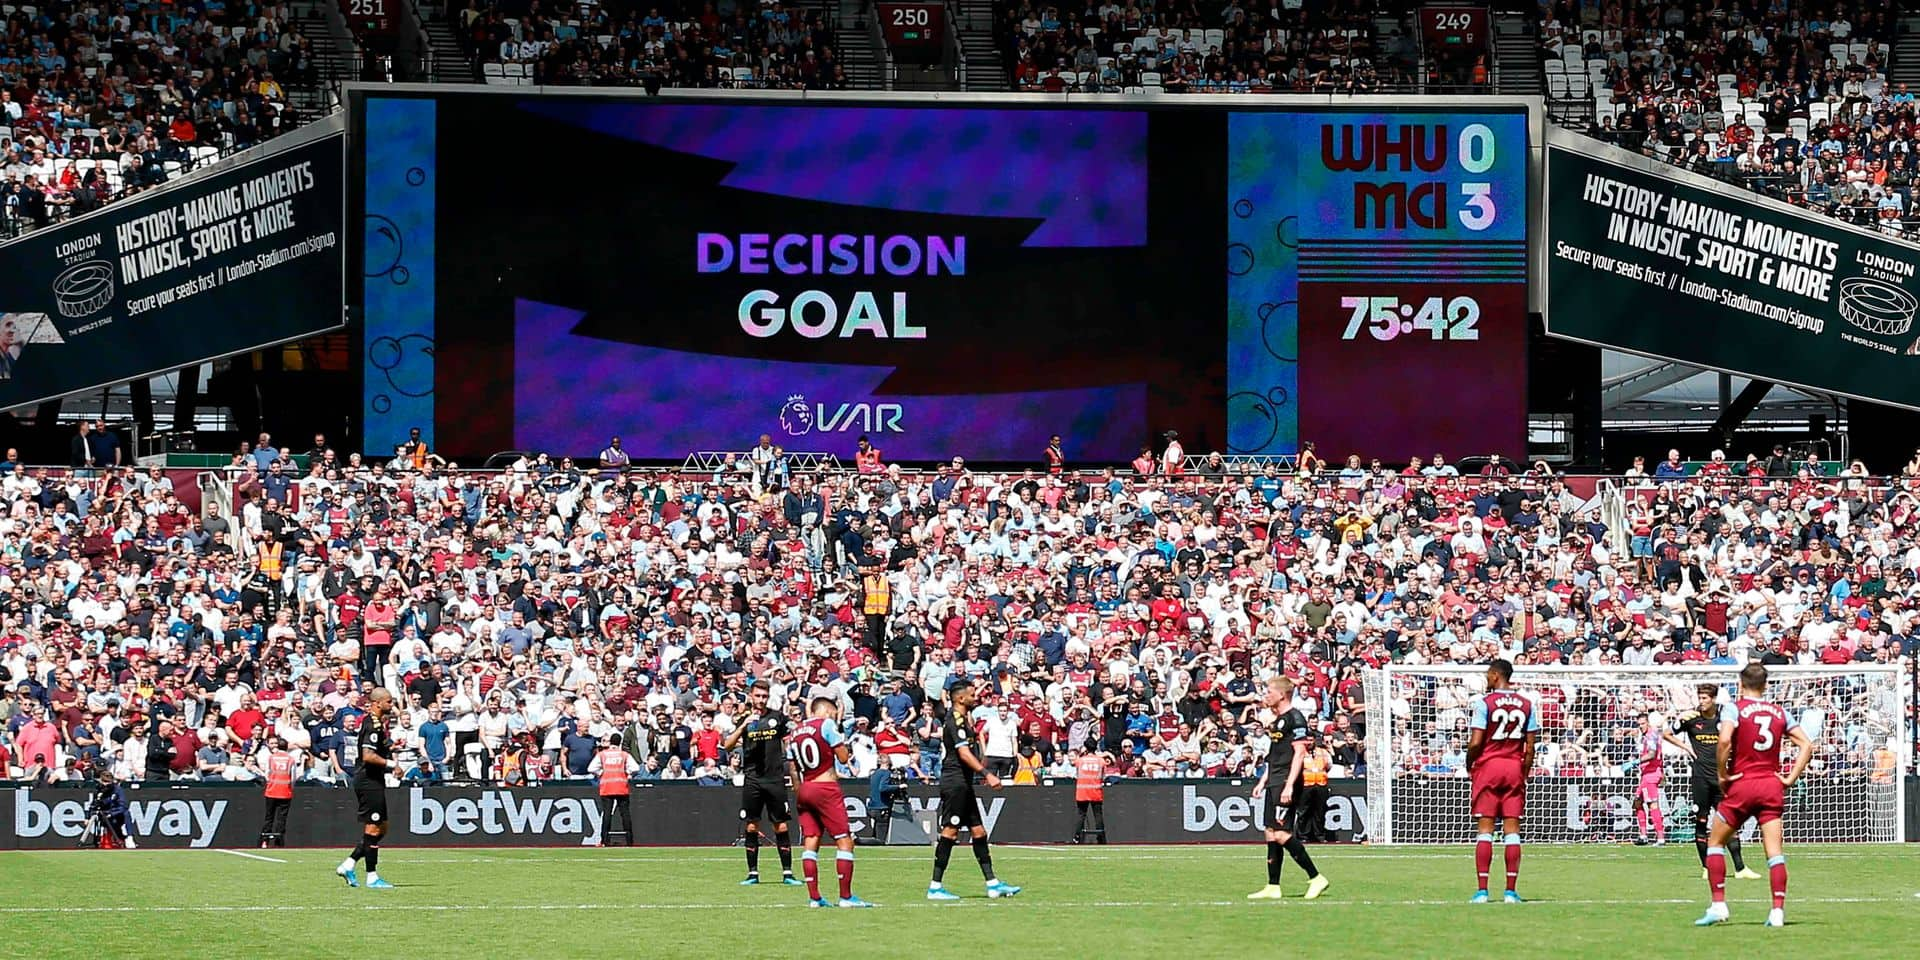 The big screen shows the VAR decision ruling Manchester City's third goal as valid during the English Premier League football match between West Ham United and Manchester City at The London Stadium, in east London on August 10, 2019. (Photo by Ian KINGTON / AFP) / RESTRICTED TO EDITORIAL USE. No use with unauthorized audio, video, data, fixture lists, club/league logos or 'live' services. Online in-match use limited to 120 images. An additional 40 images may be used in extra time. No video emulation. Social media in-match use limited to 120 images. An additional 40 images may be used in extra time. No use in betting publications, games or single club/league/player publications. /